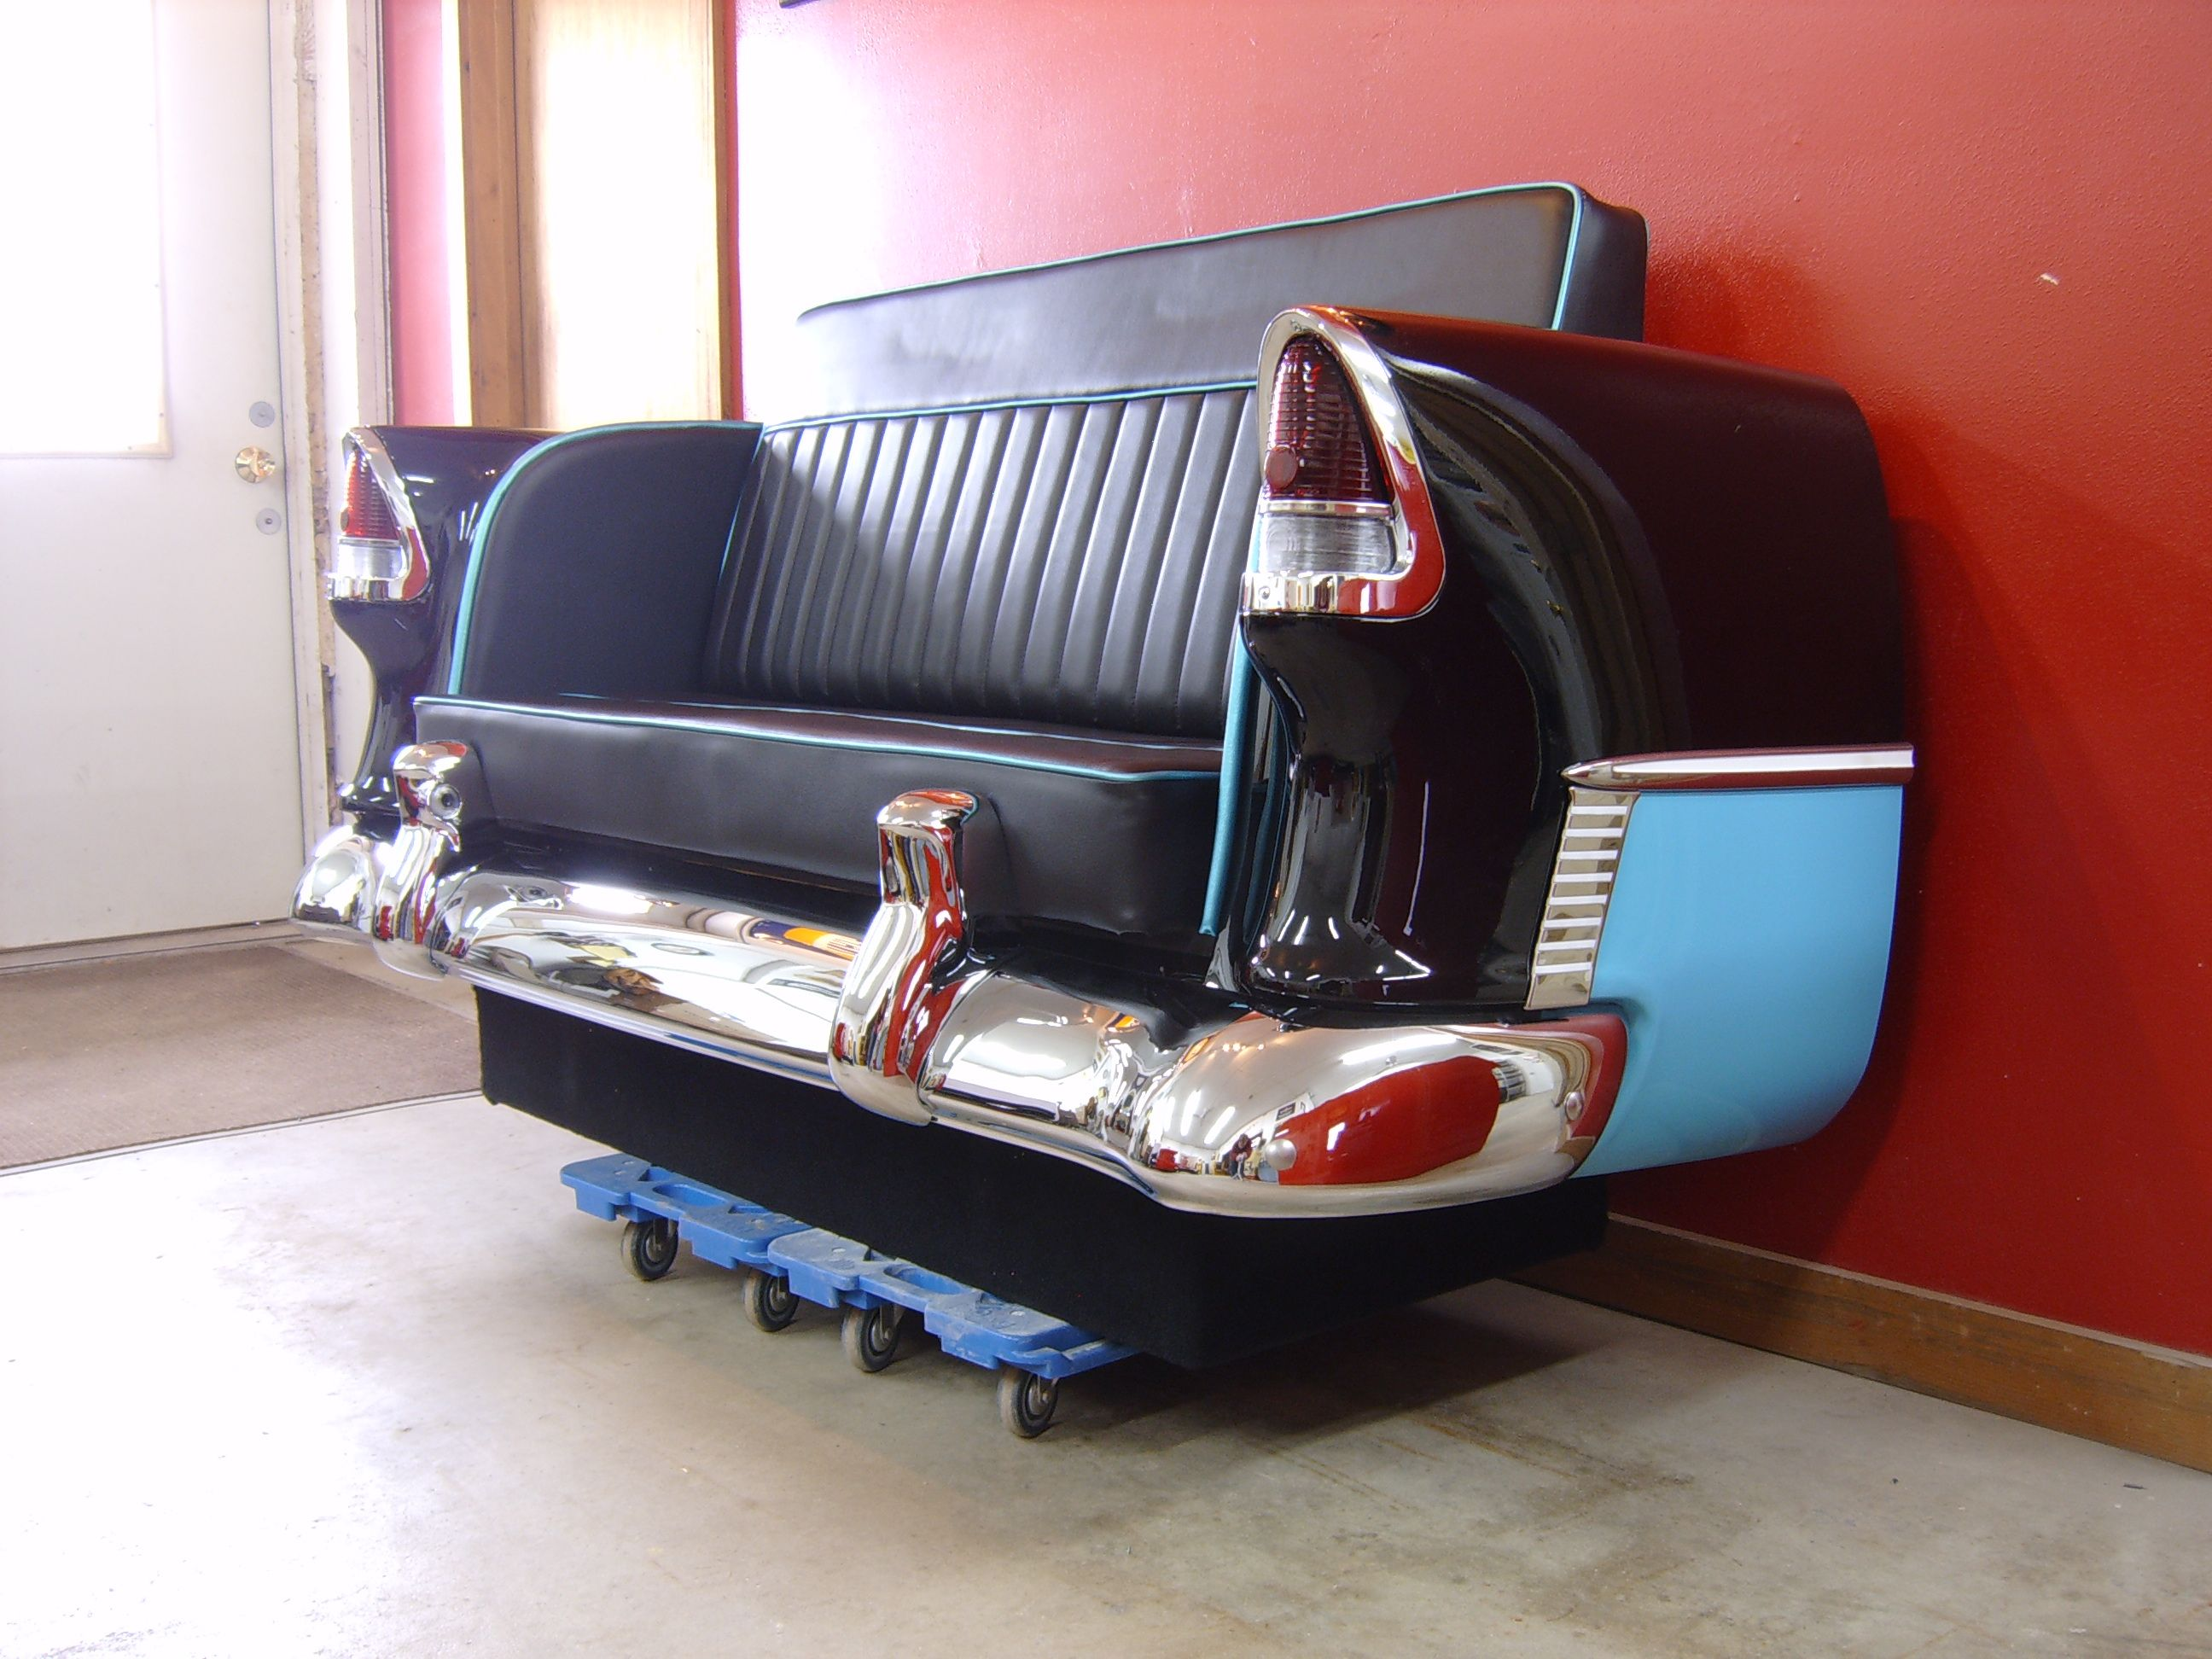 55 chevy bel air sofa for my future car garage shop for Garage bel auto 38400